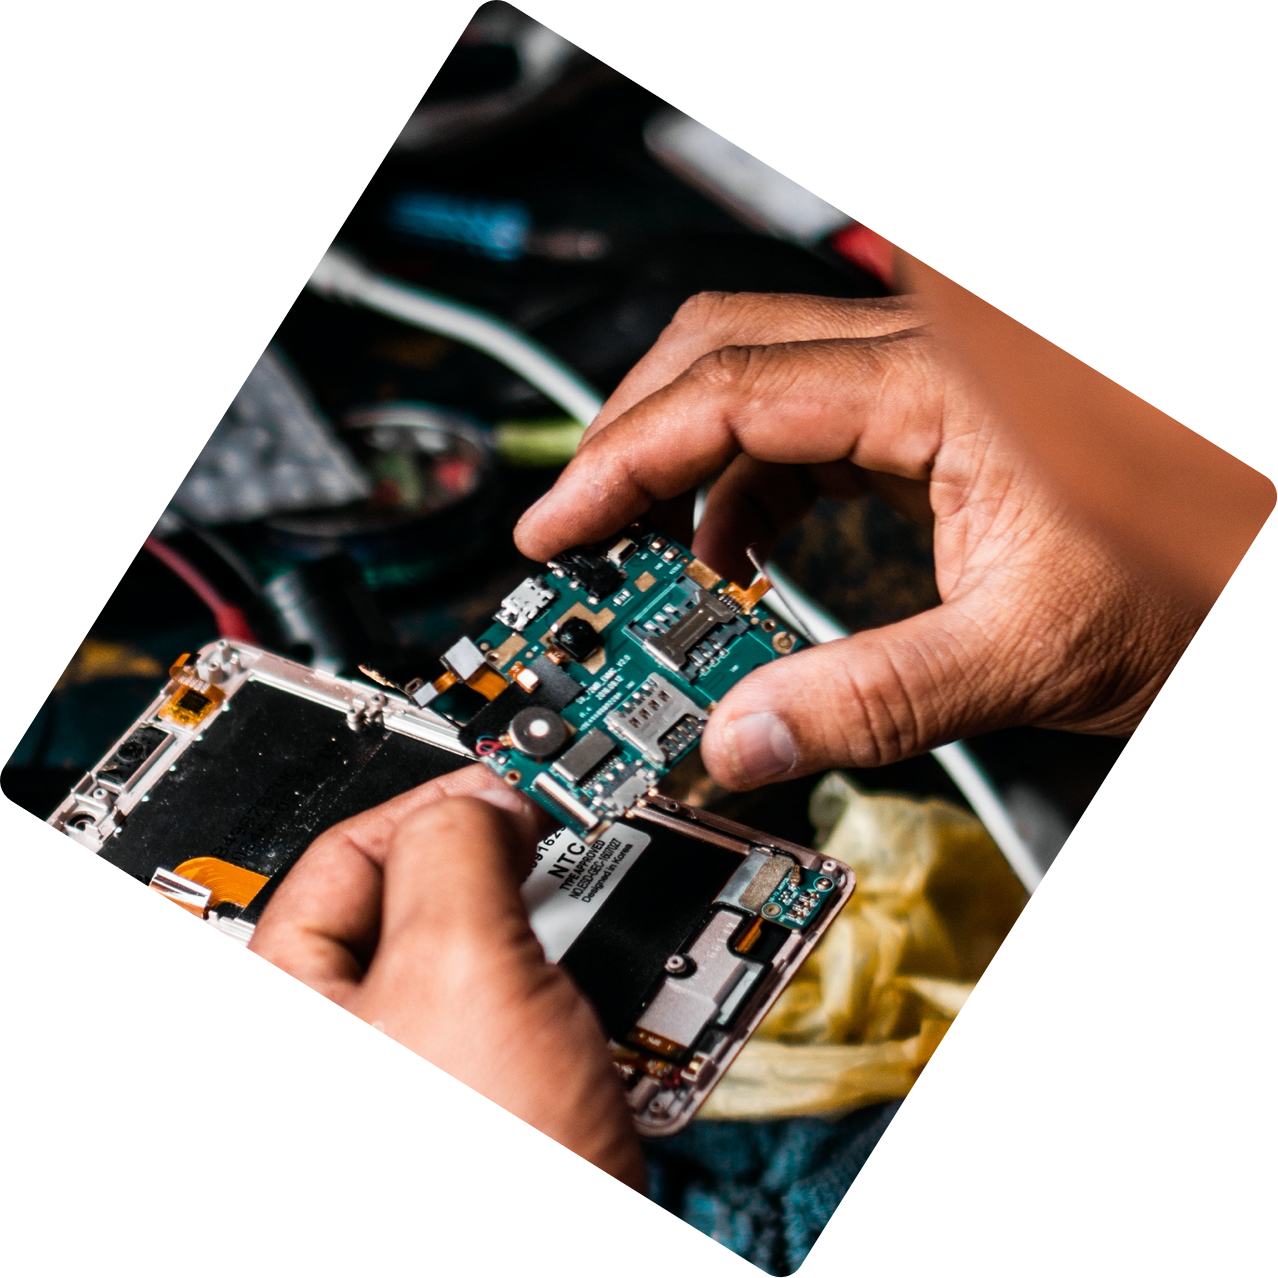 Person assembling an electronic device